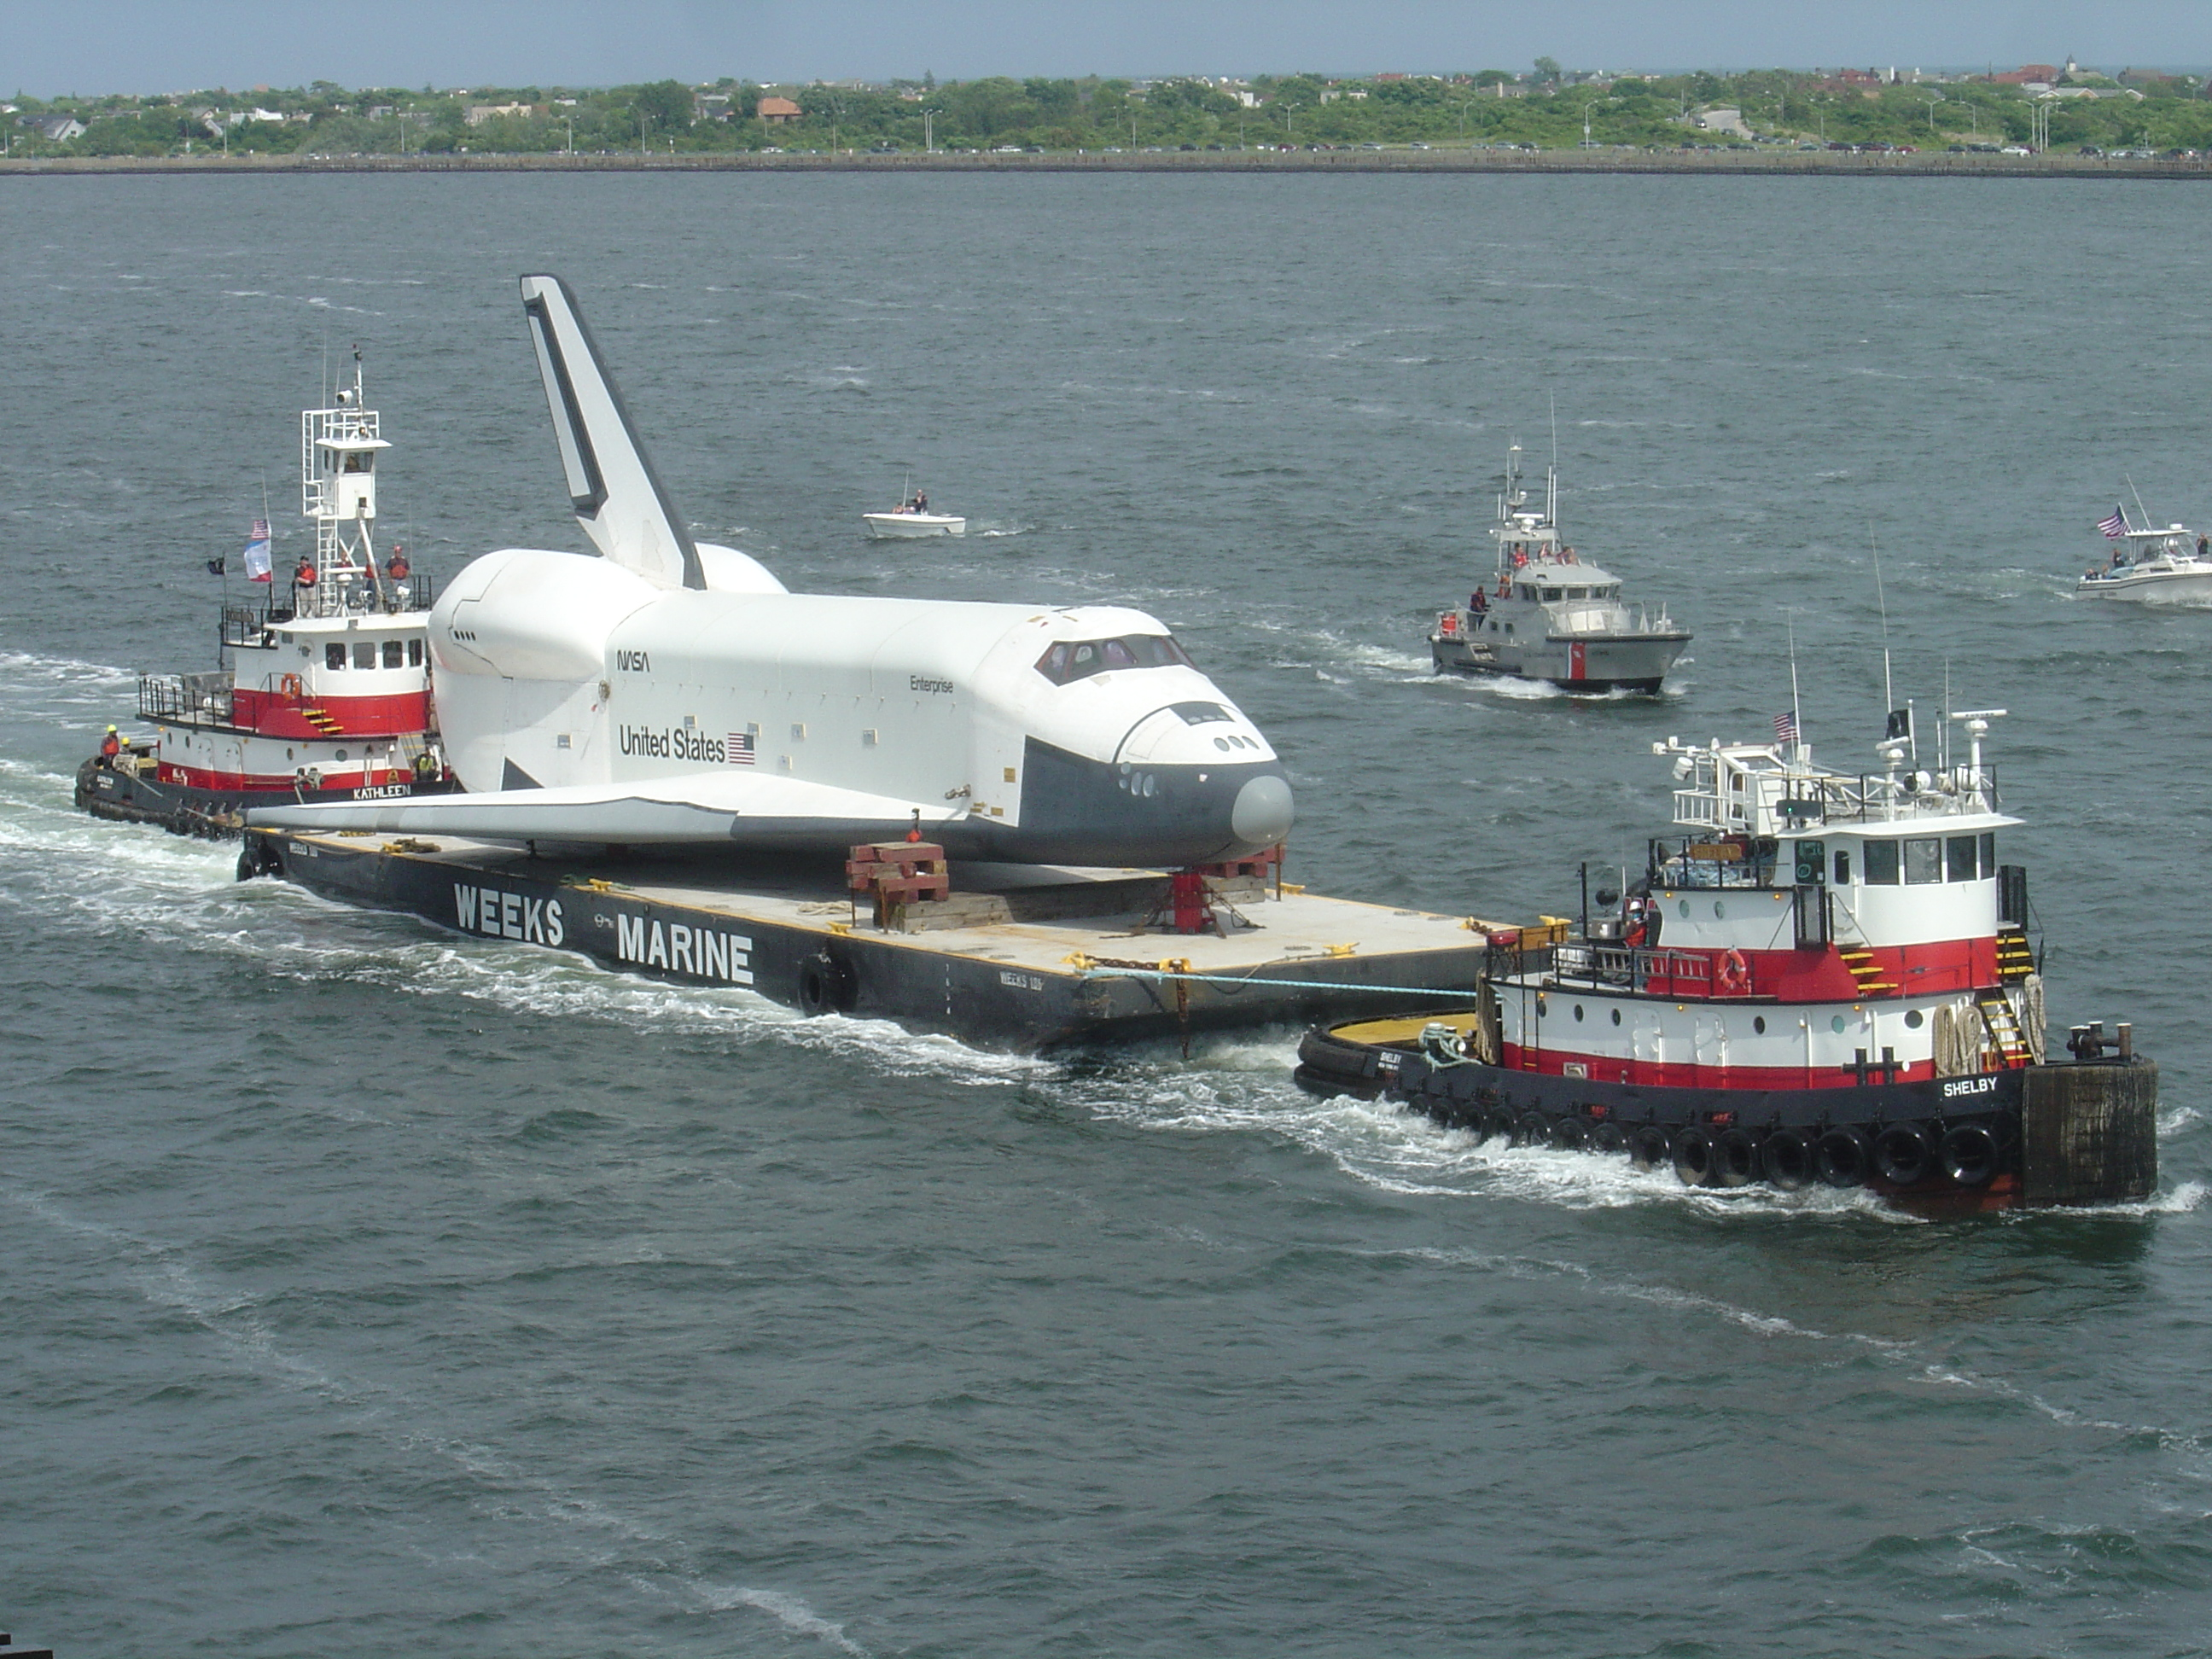 File:Transport of Space Shuttle Enterprise to Intrepid Sea ...